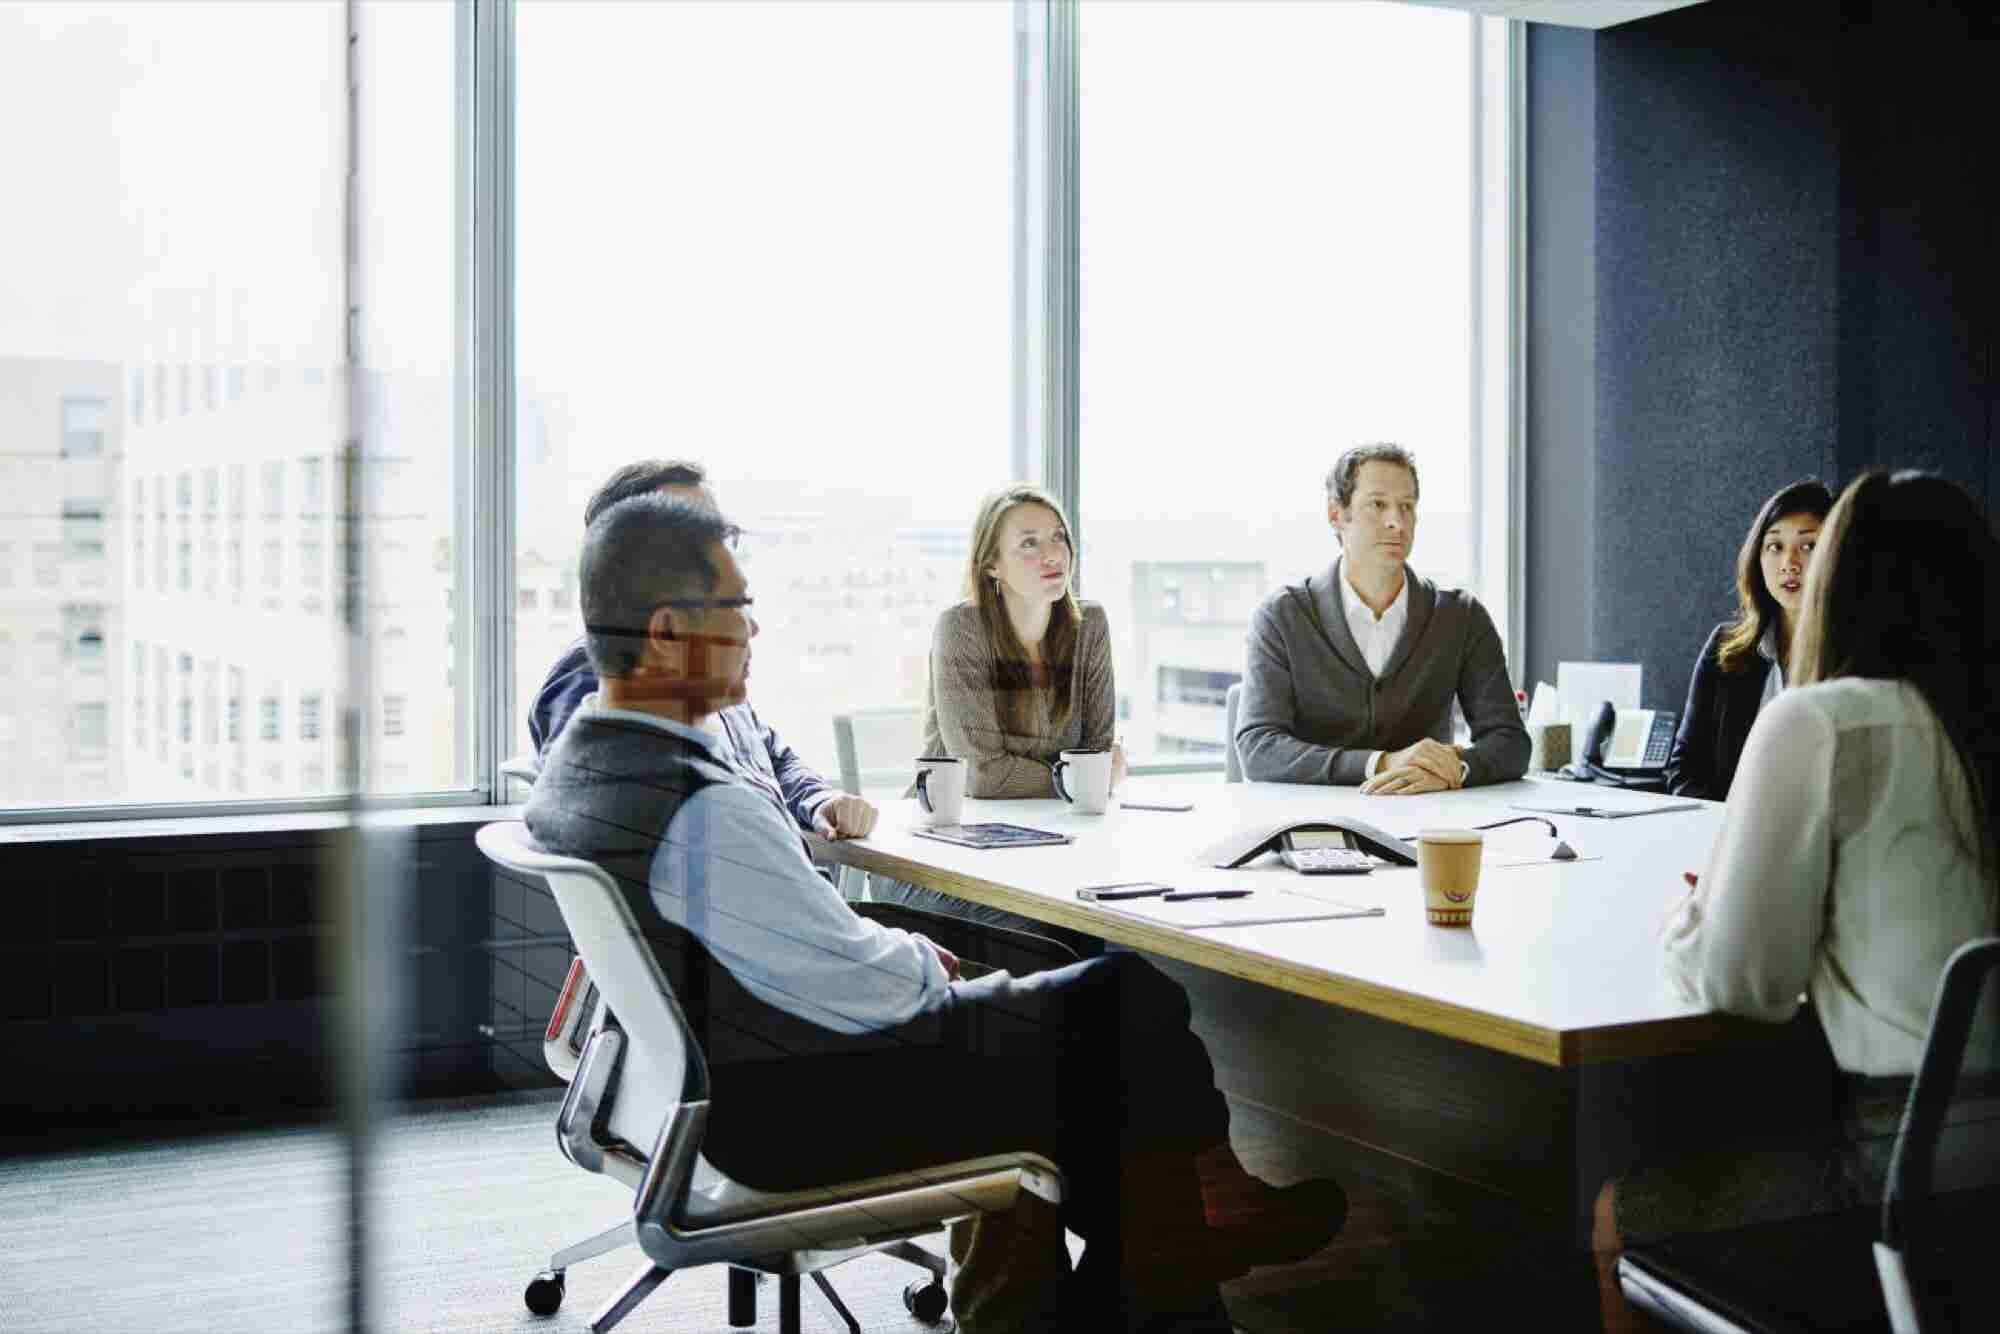 Leading Your Company Forward in These Tumultuous Times